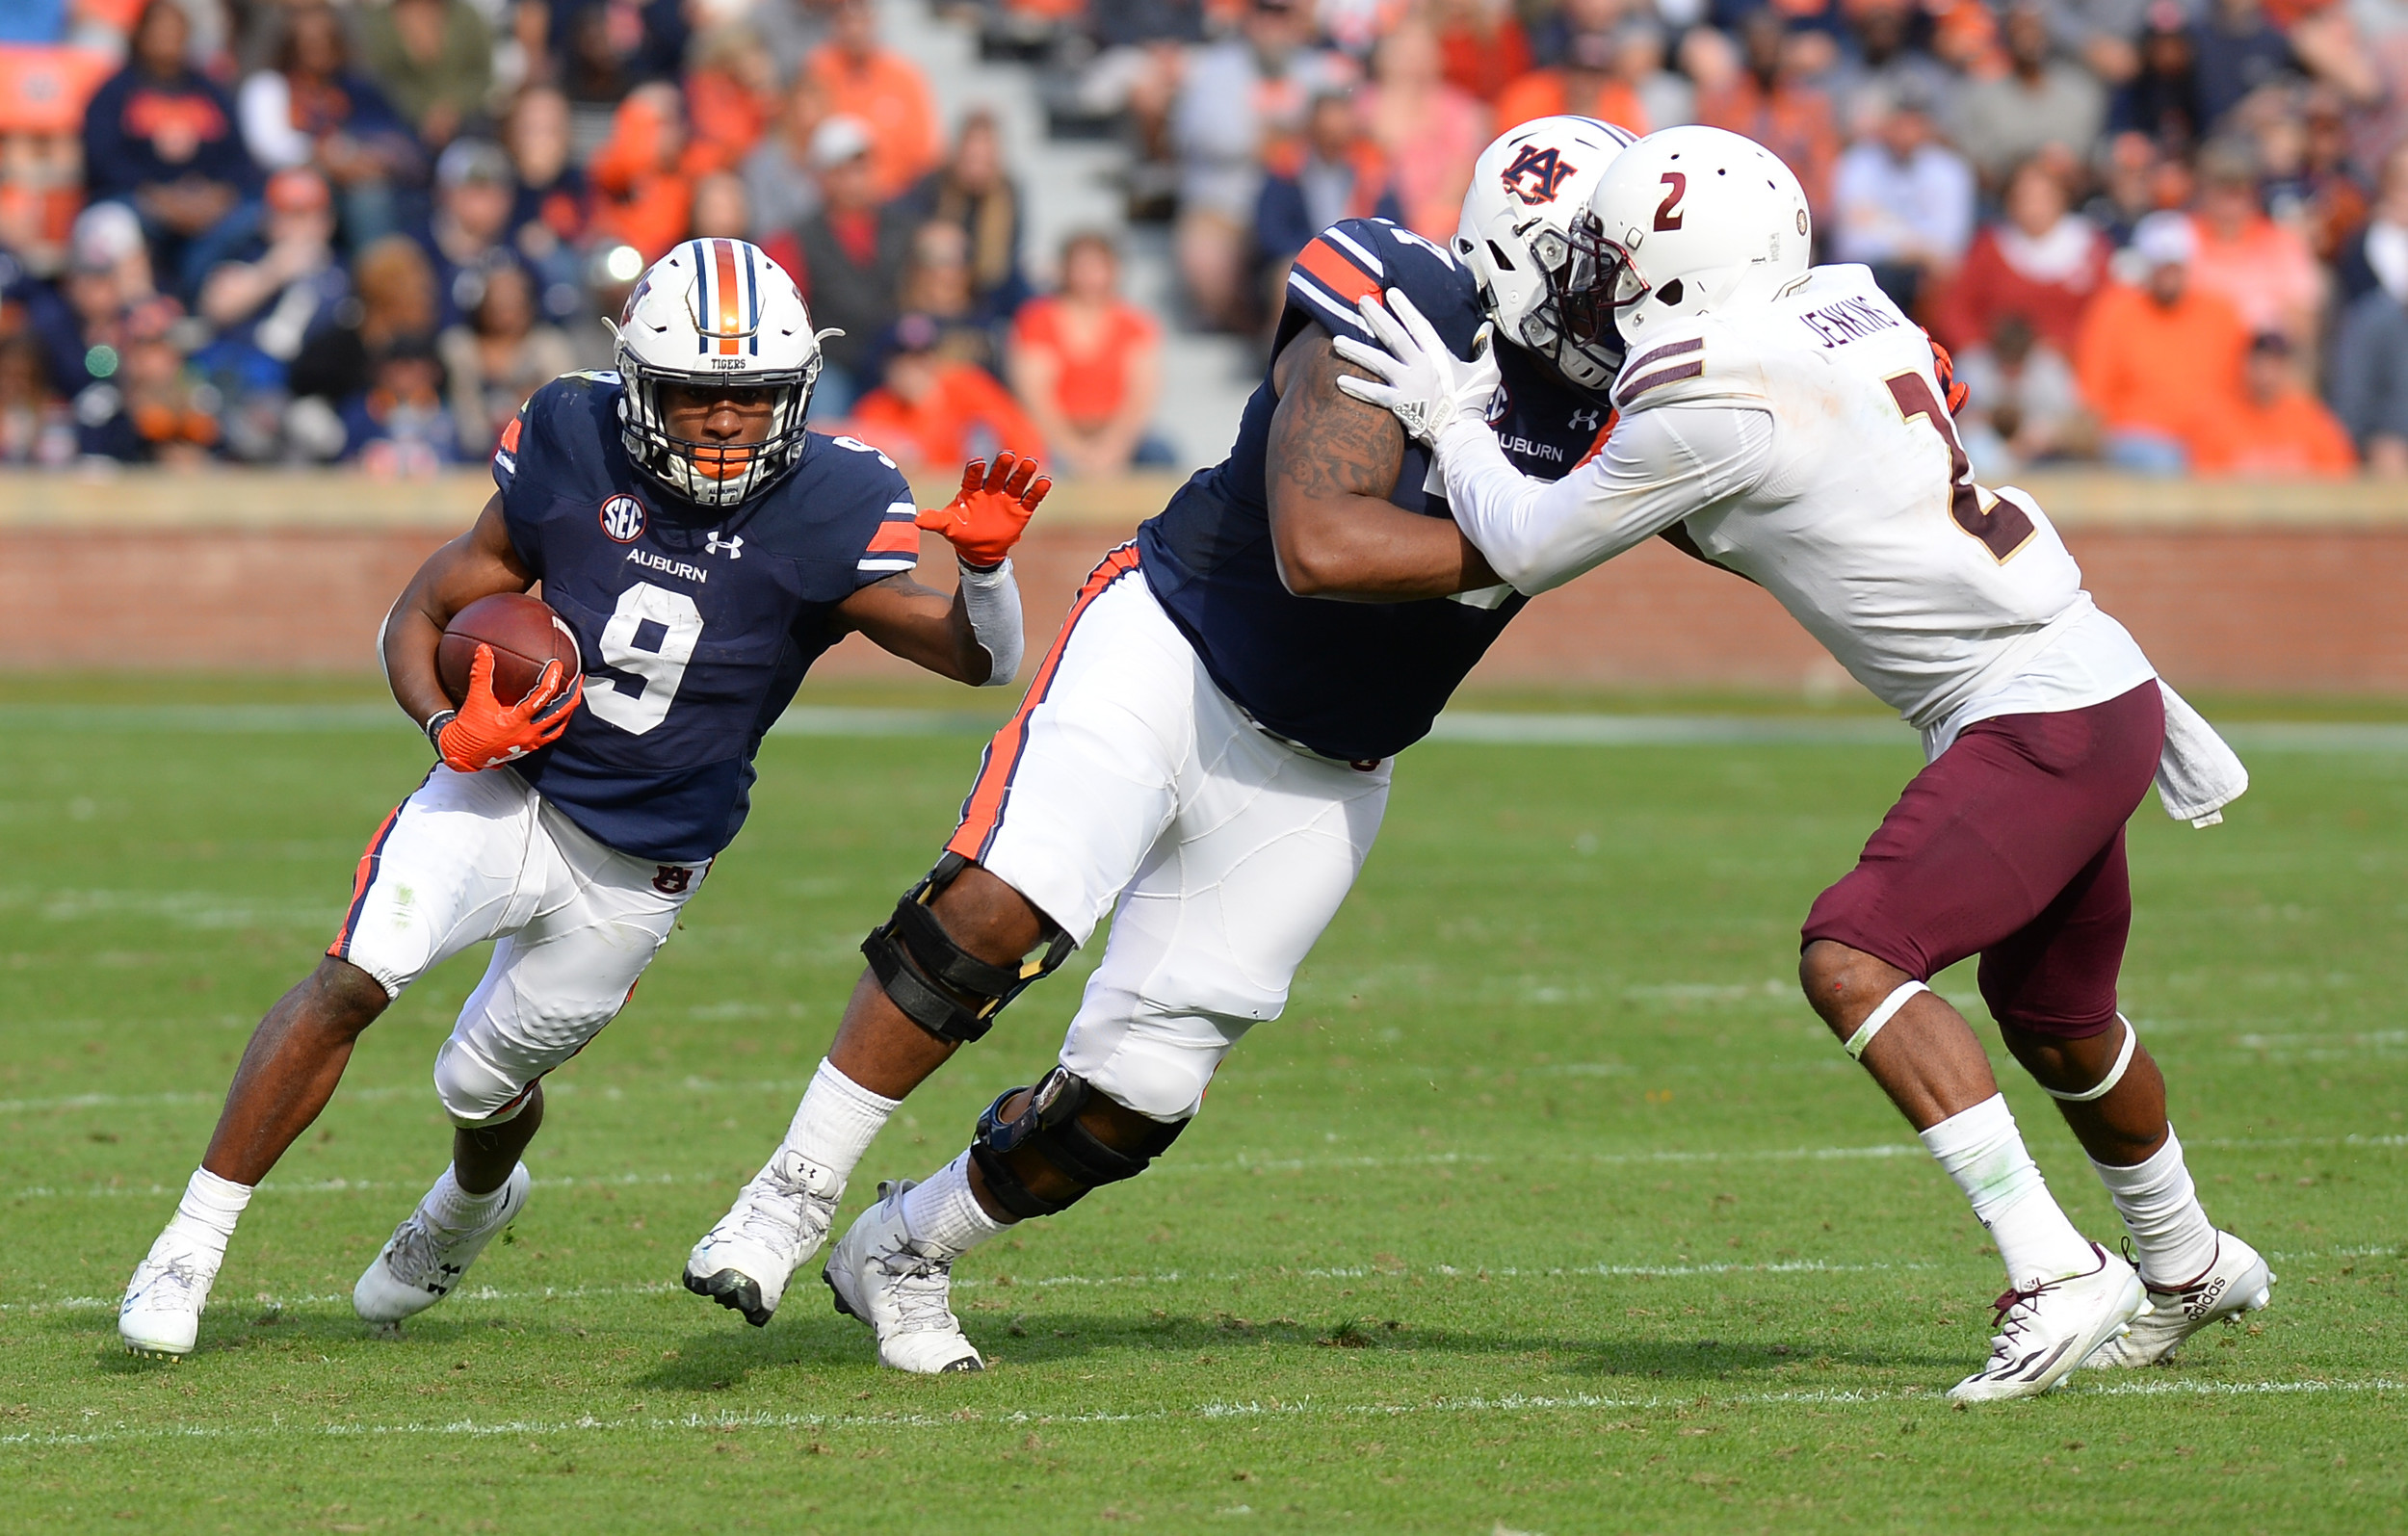 Auburn Tigers running back Kam Martin (9) runs behind the block of offensive lineman Marquel Harrell (77) during the second half of Saturday's game, at Jordan-Hare Stadium.